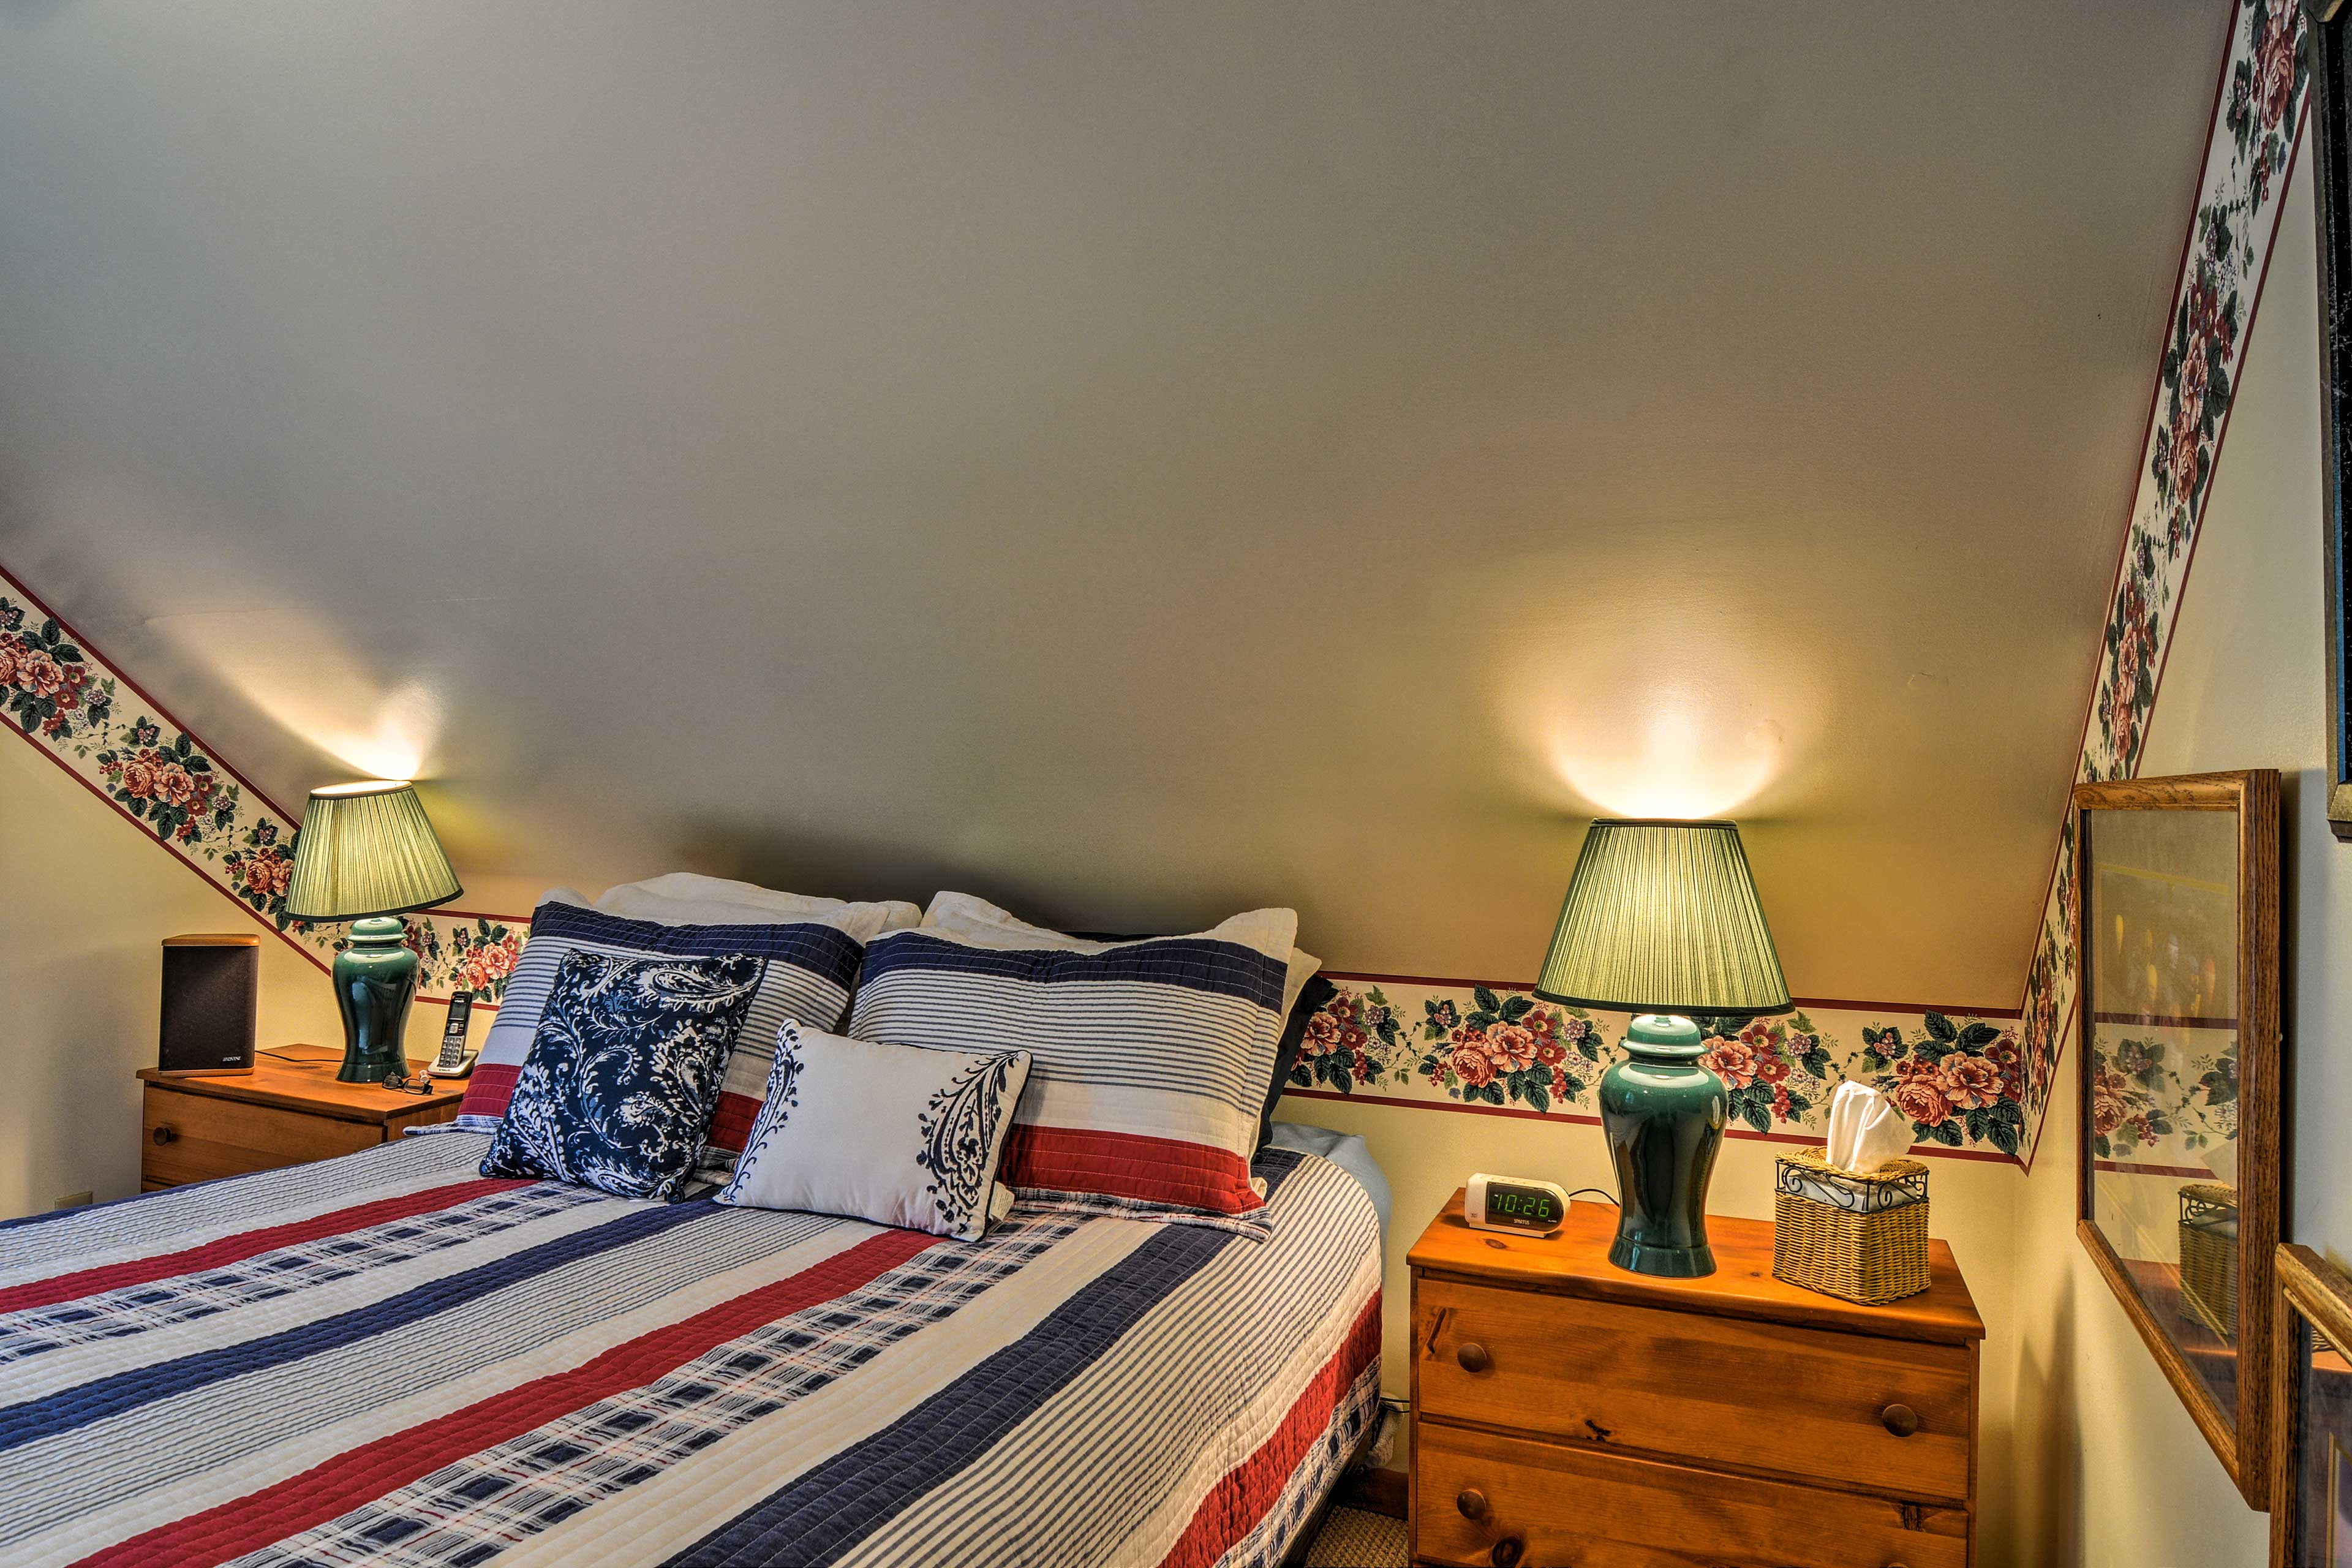 Upstairs, the master bedroom boasts a plush queen bed.